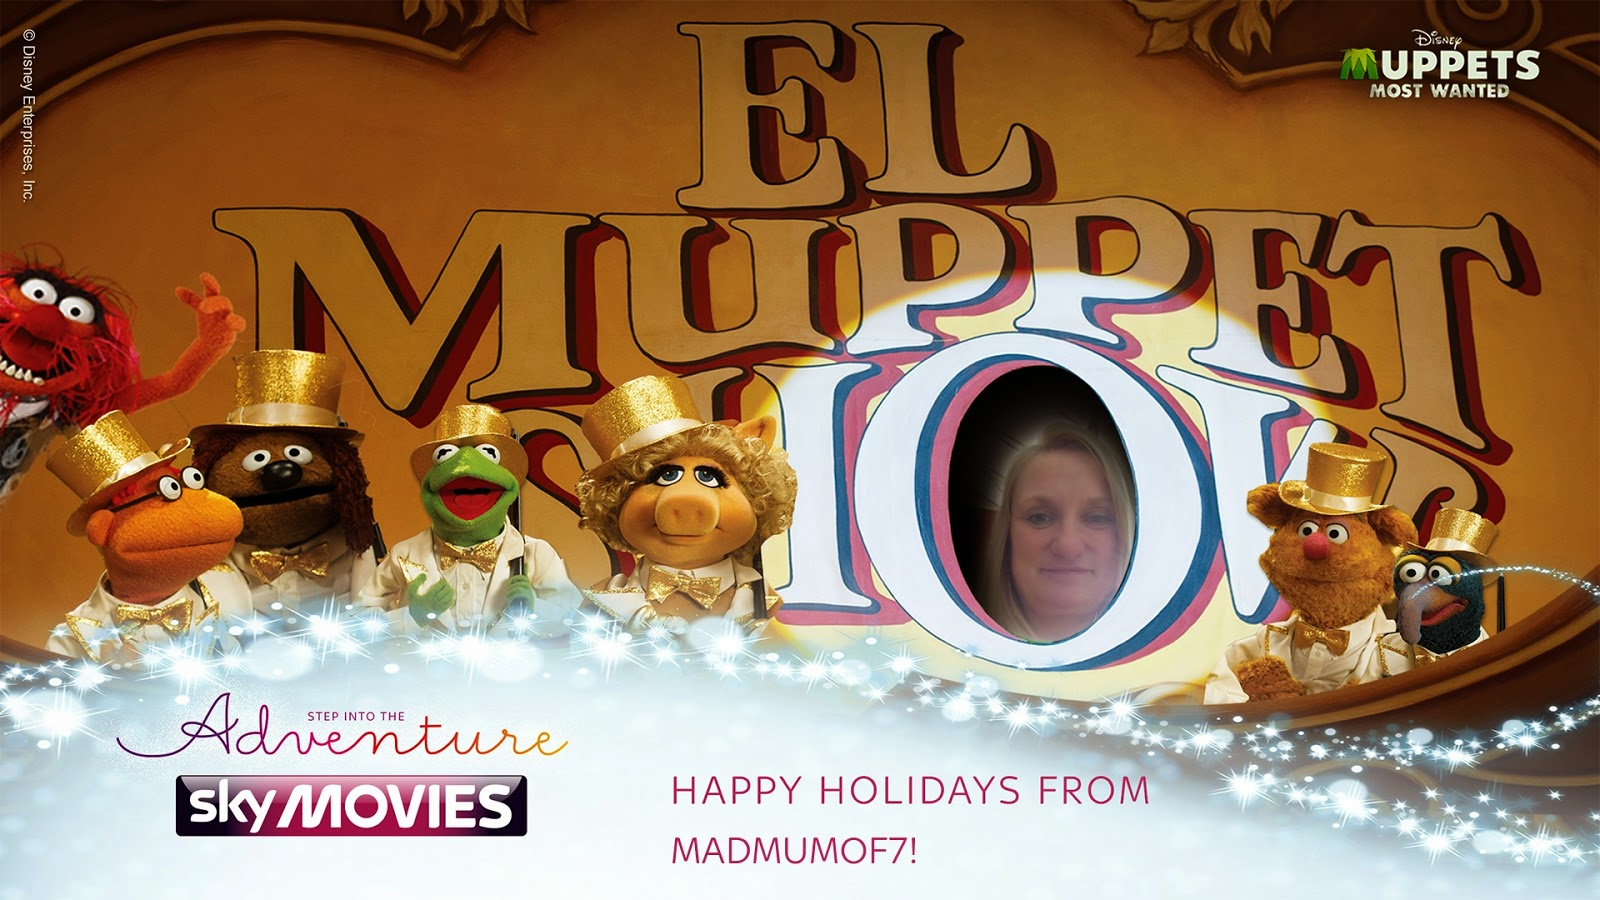 madmumof7 in The Muppet Movie scene from @SkyMovies #MovieMe